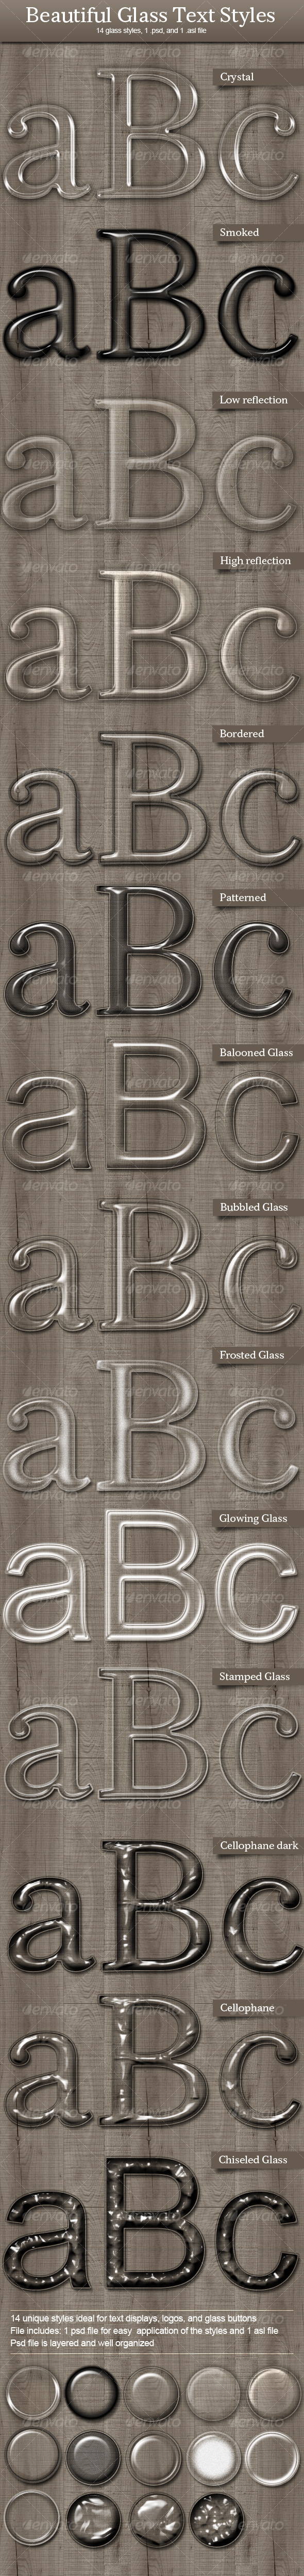 GraphicRiver Beautiful Glass Text Styles 95687